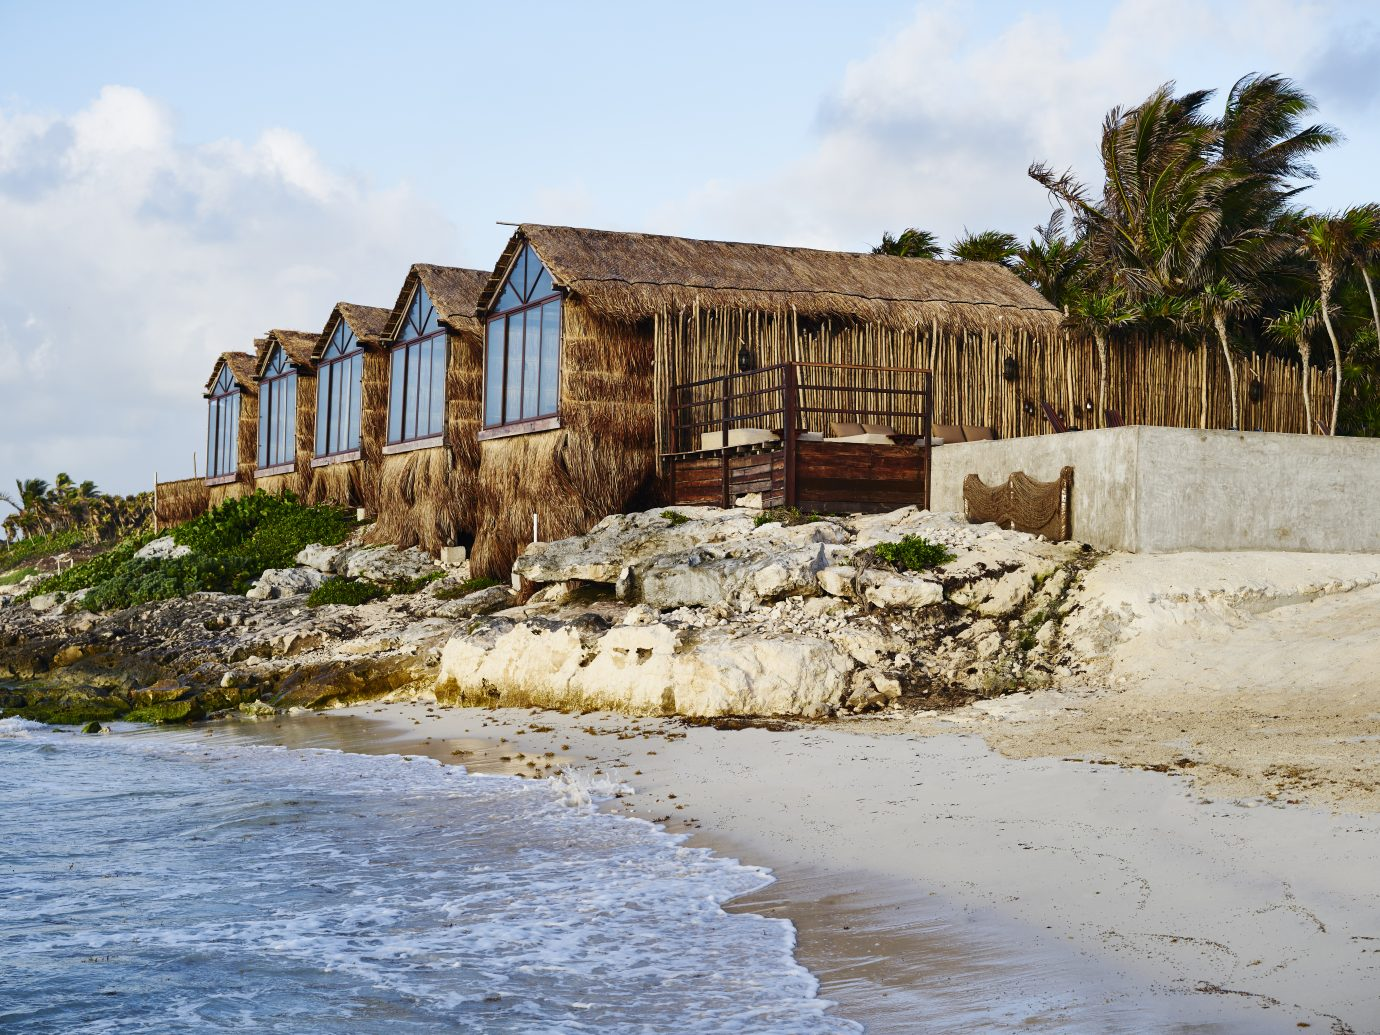 Habitas Tulum exterior next to beach